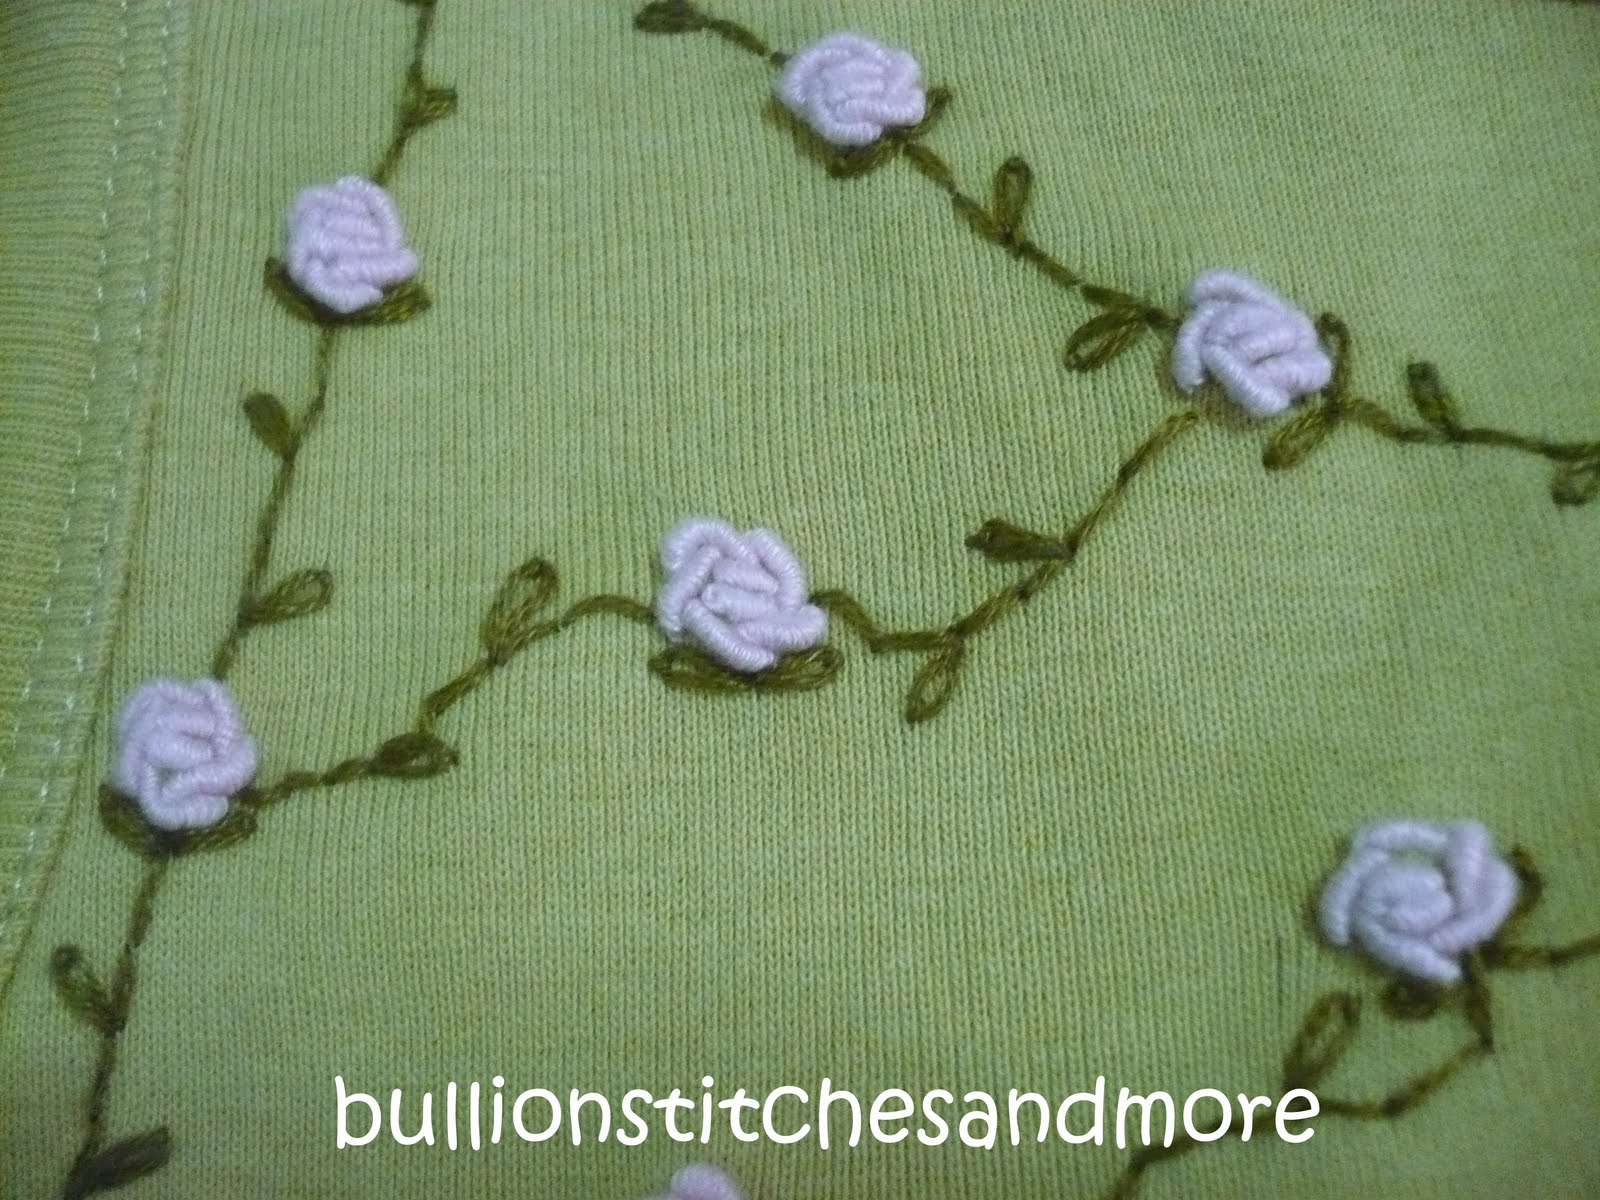 Rose stitch embroidery images